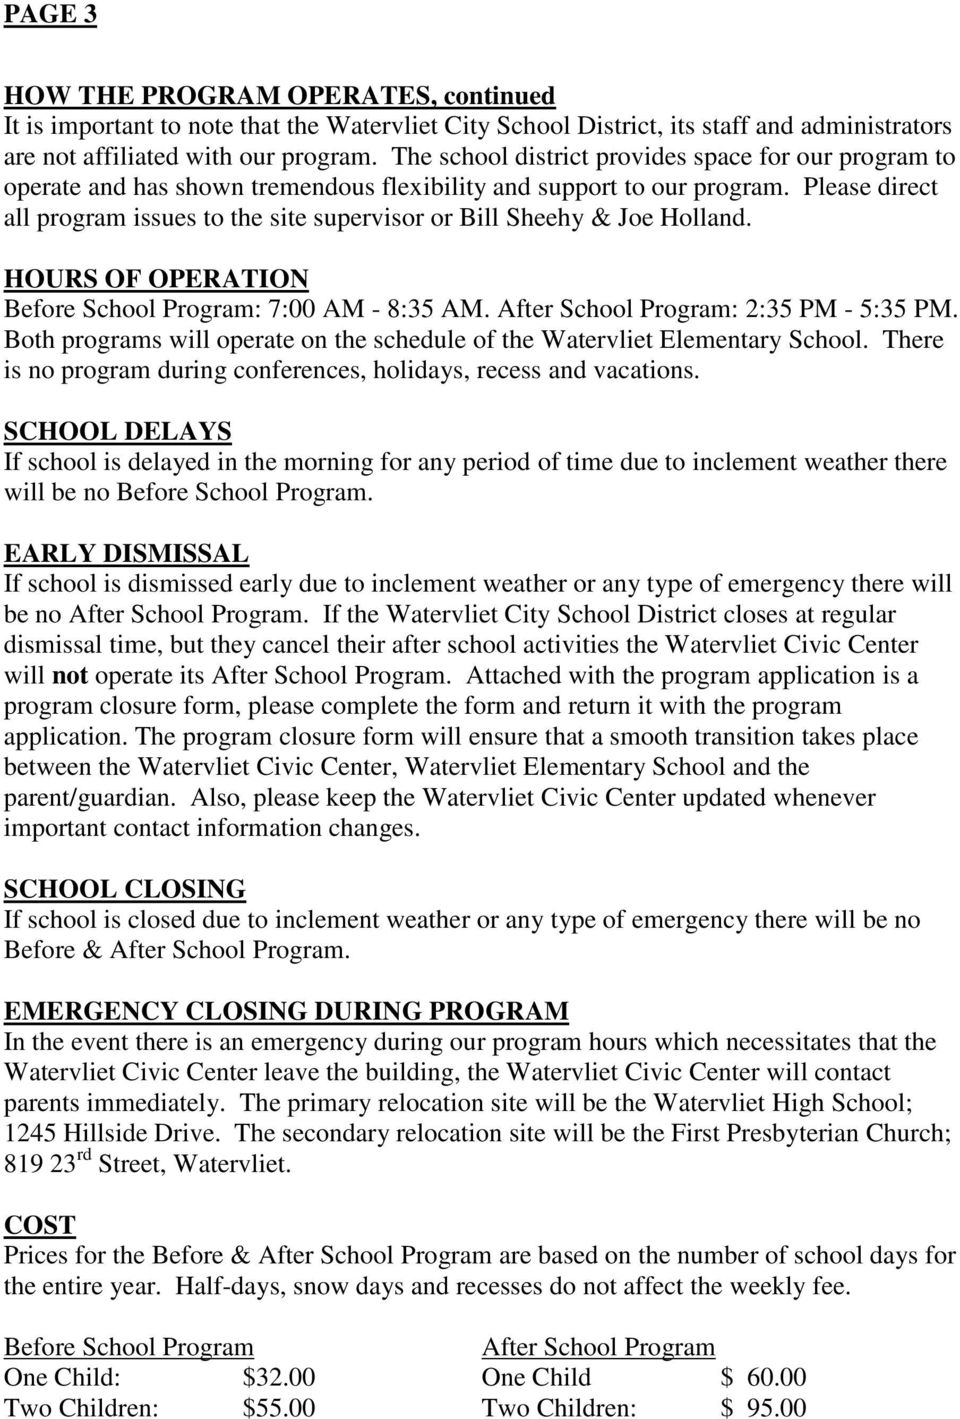 Please direct all program issues to the site supervisor or Bill Sheehy & Joe Holland. HOURS OF OPERATION Before School Program: 7:00 AM - 8:35 AM. After School Program: 2:35 PM - 5:35 PM.